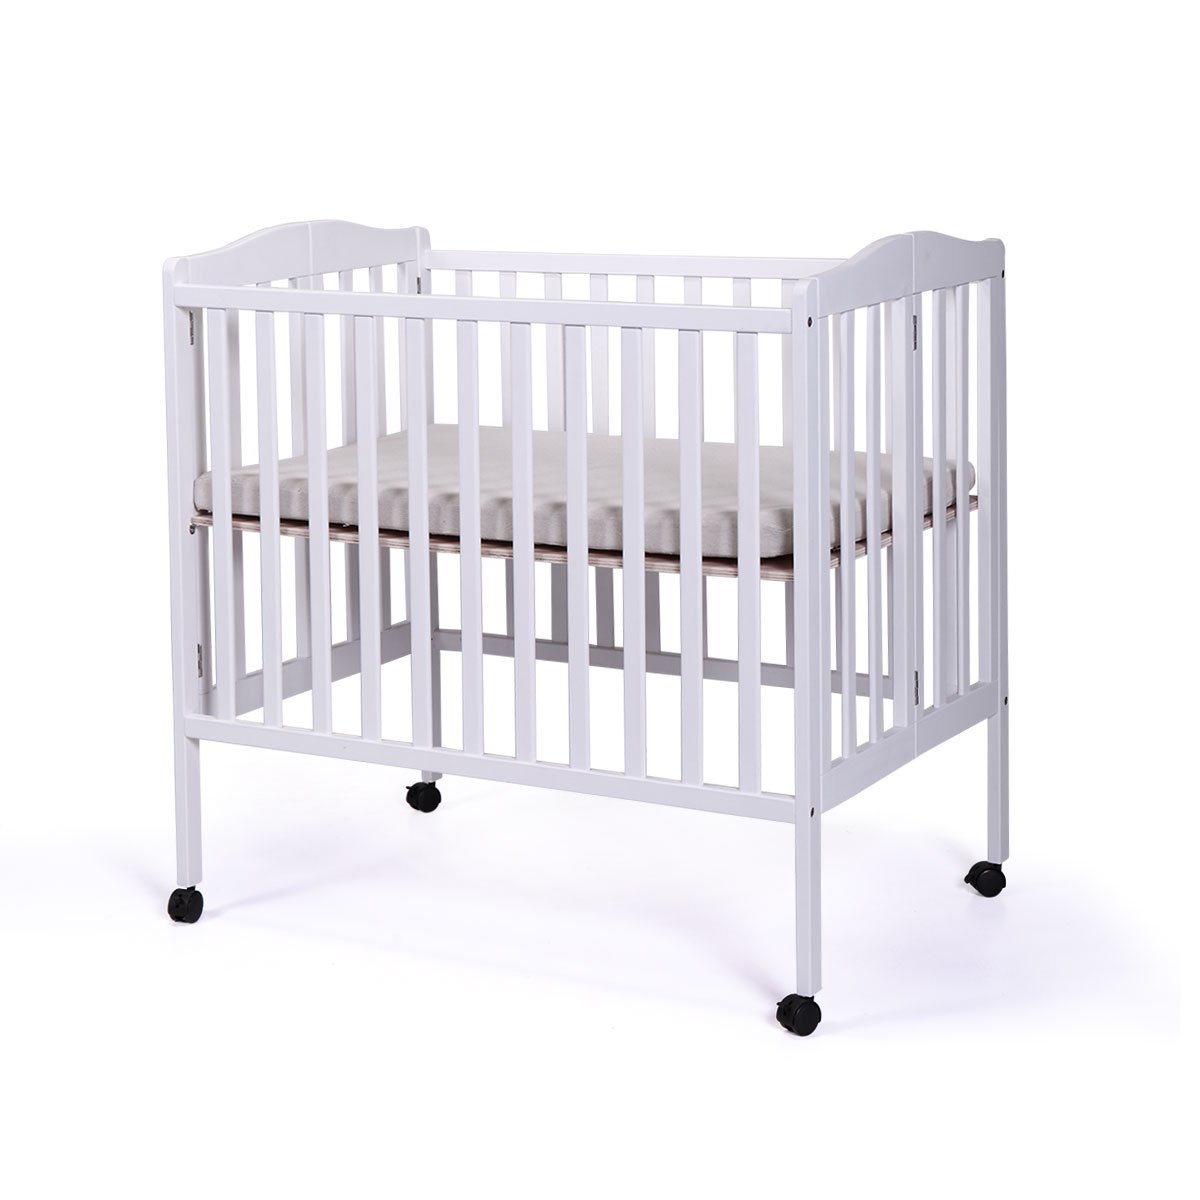 Amazon com tobbi baby side crib wooden toddler bed day bed full bed convertible w mattress nursery furniture white baby